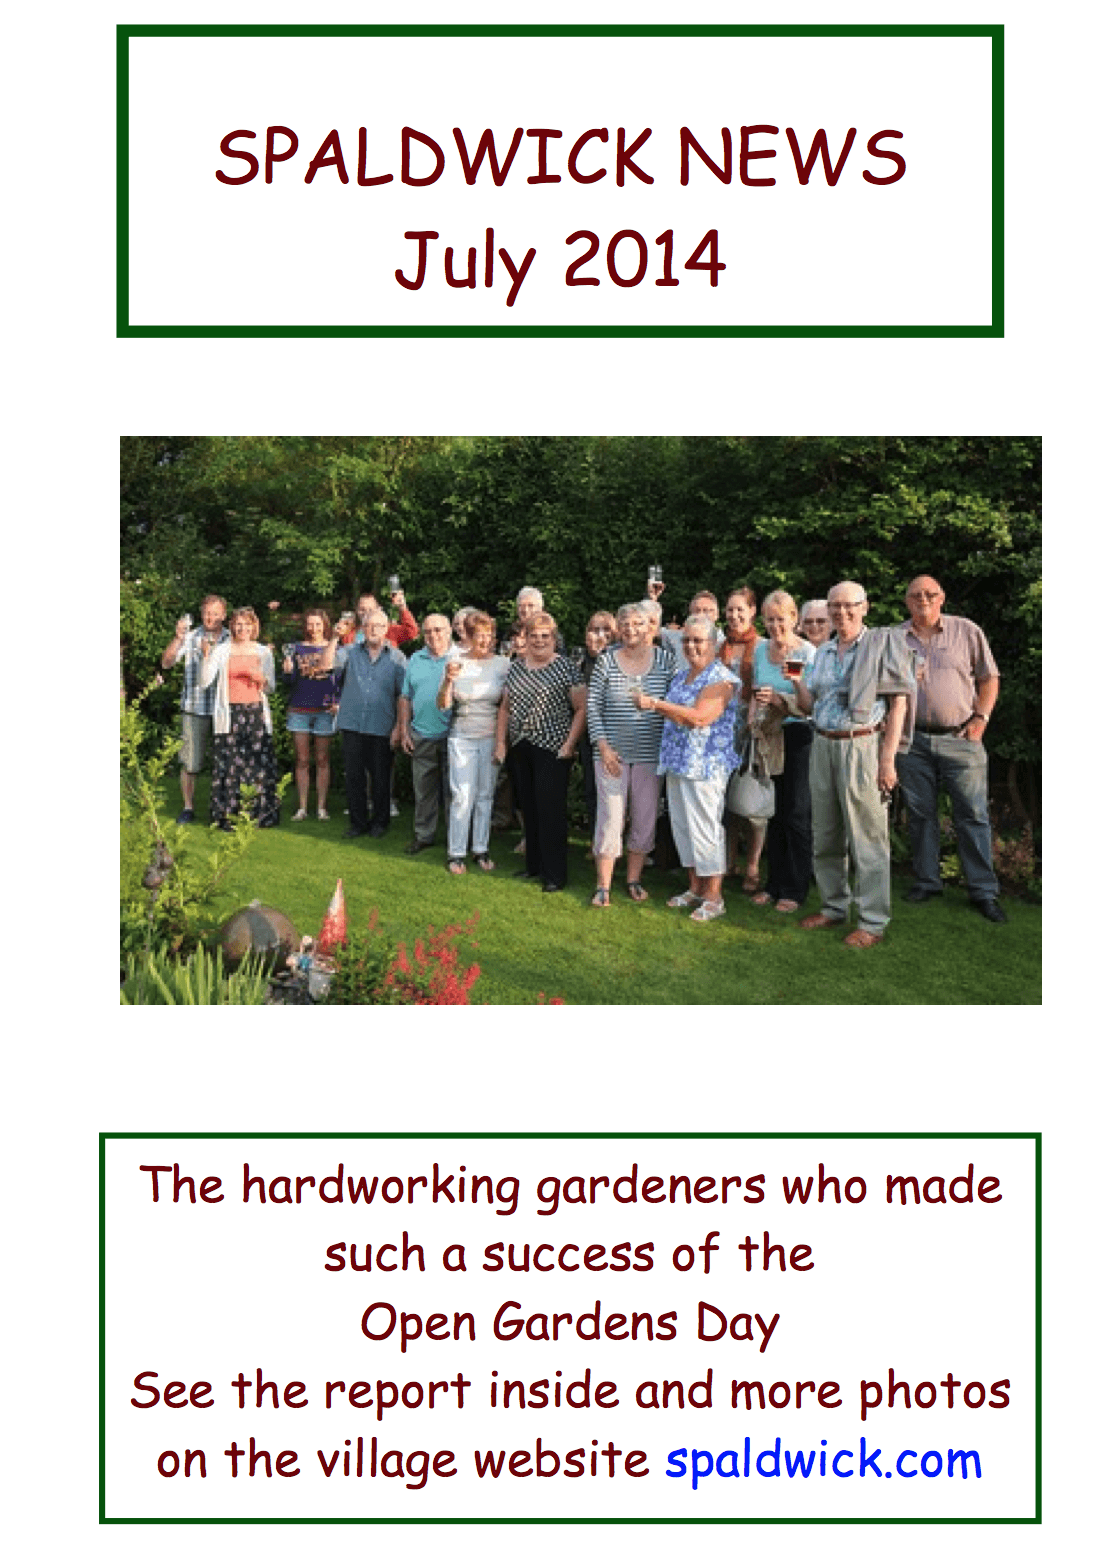 Spaldwick News for July 2014